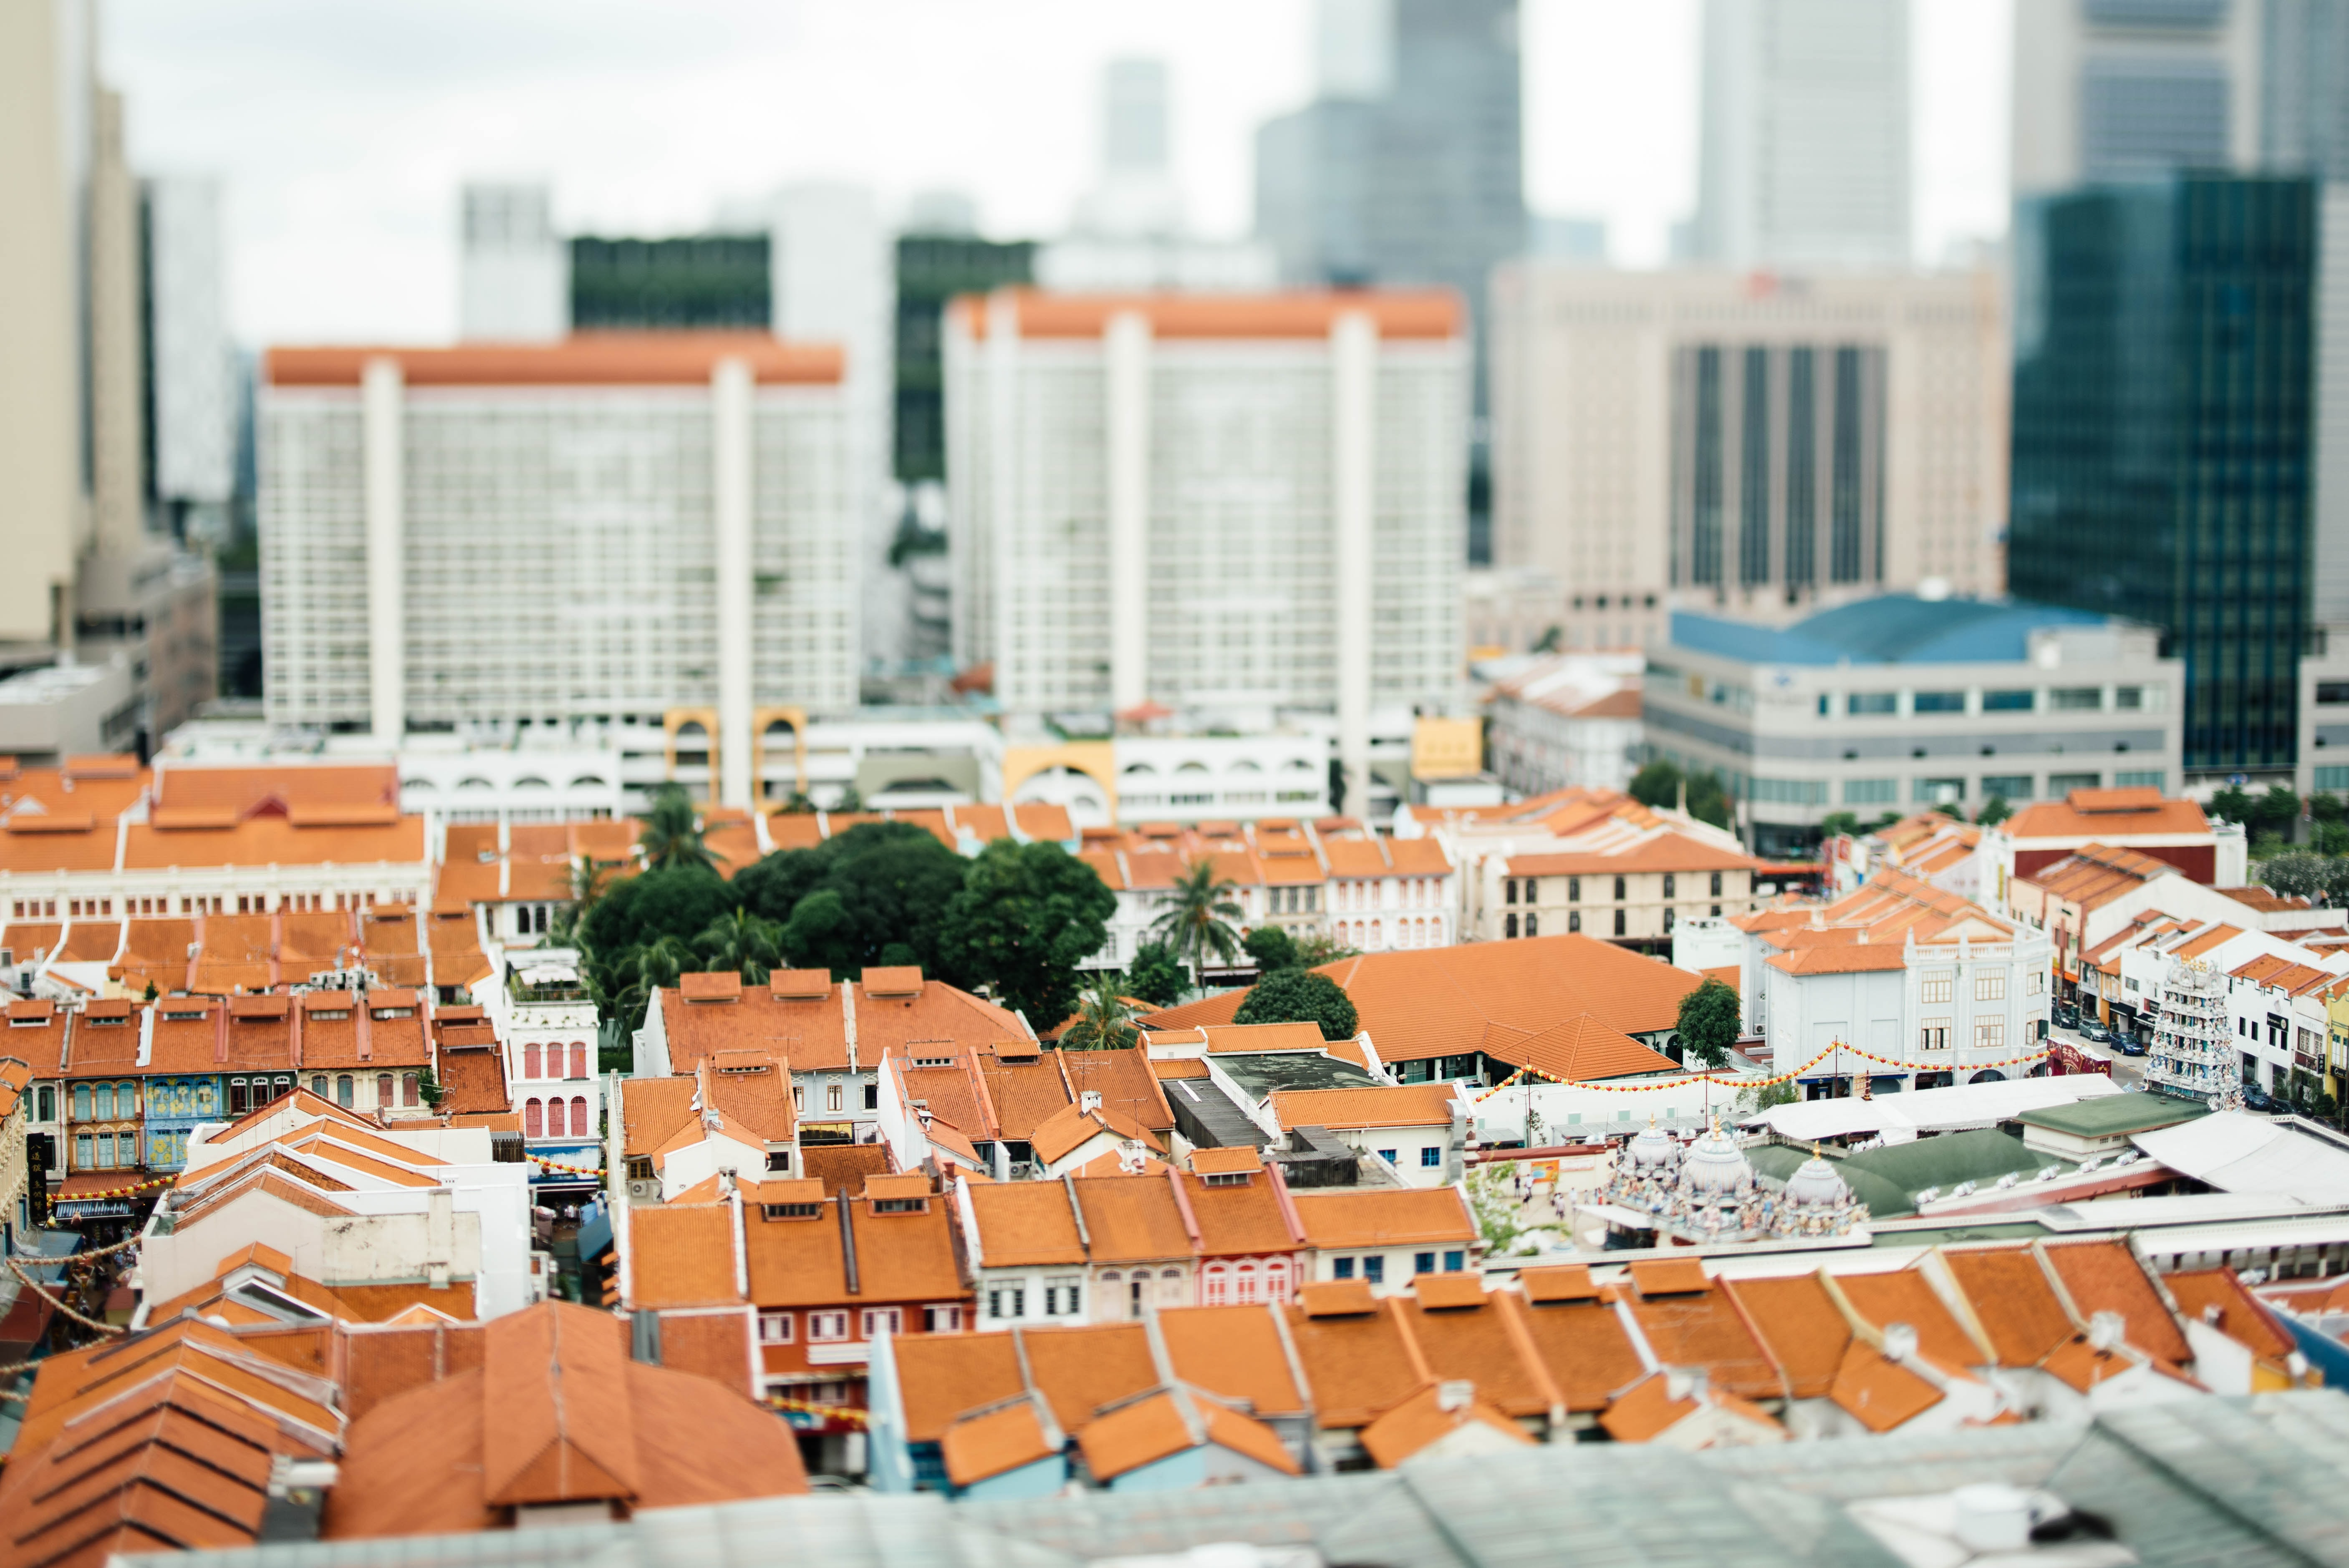 tilt-shift photography of white-and-orange houses surrounded by high rise buildings at daytime